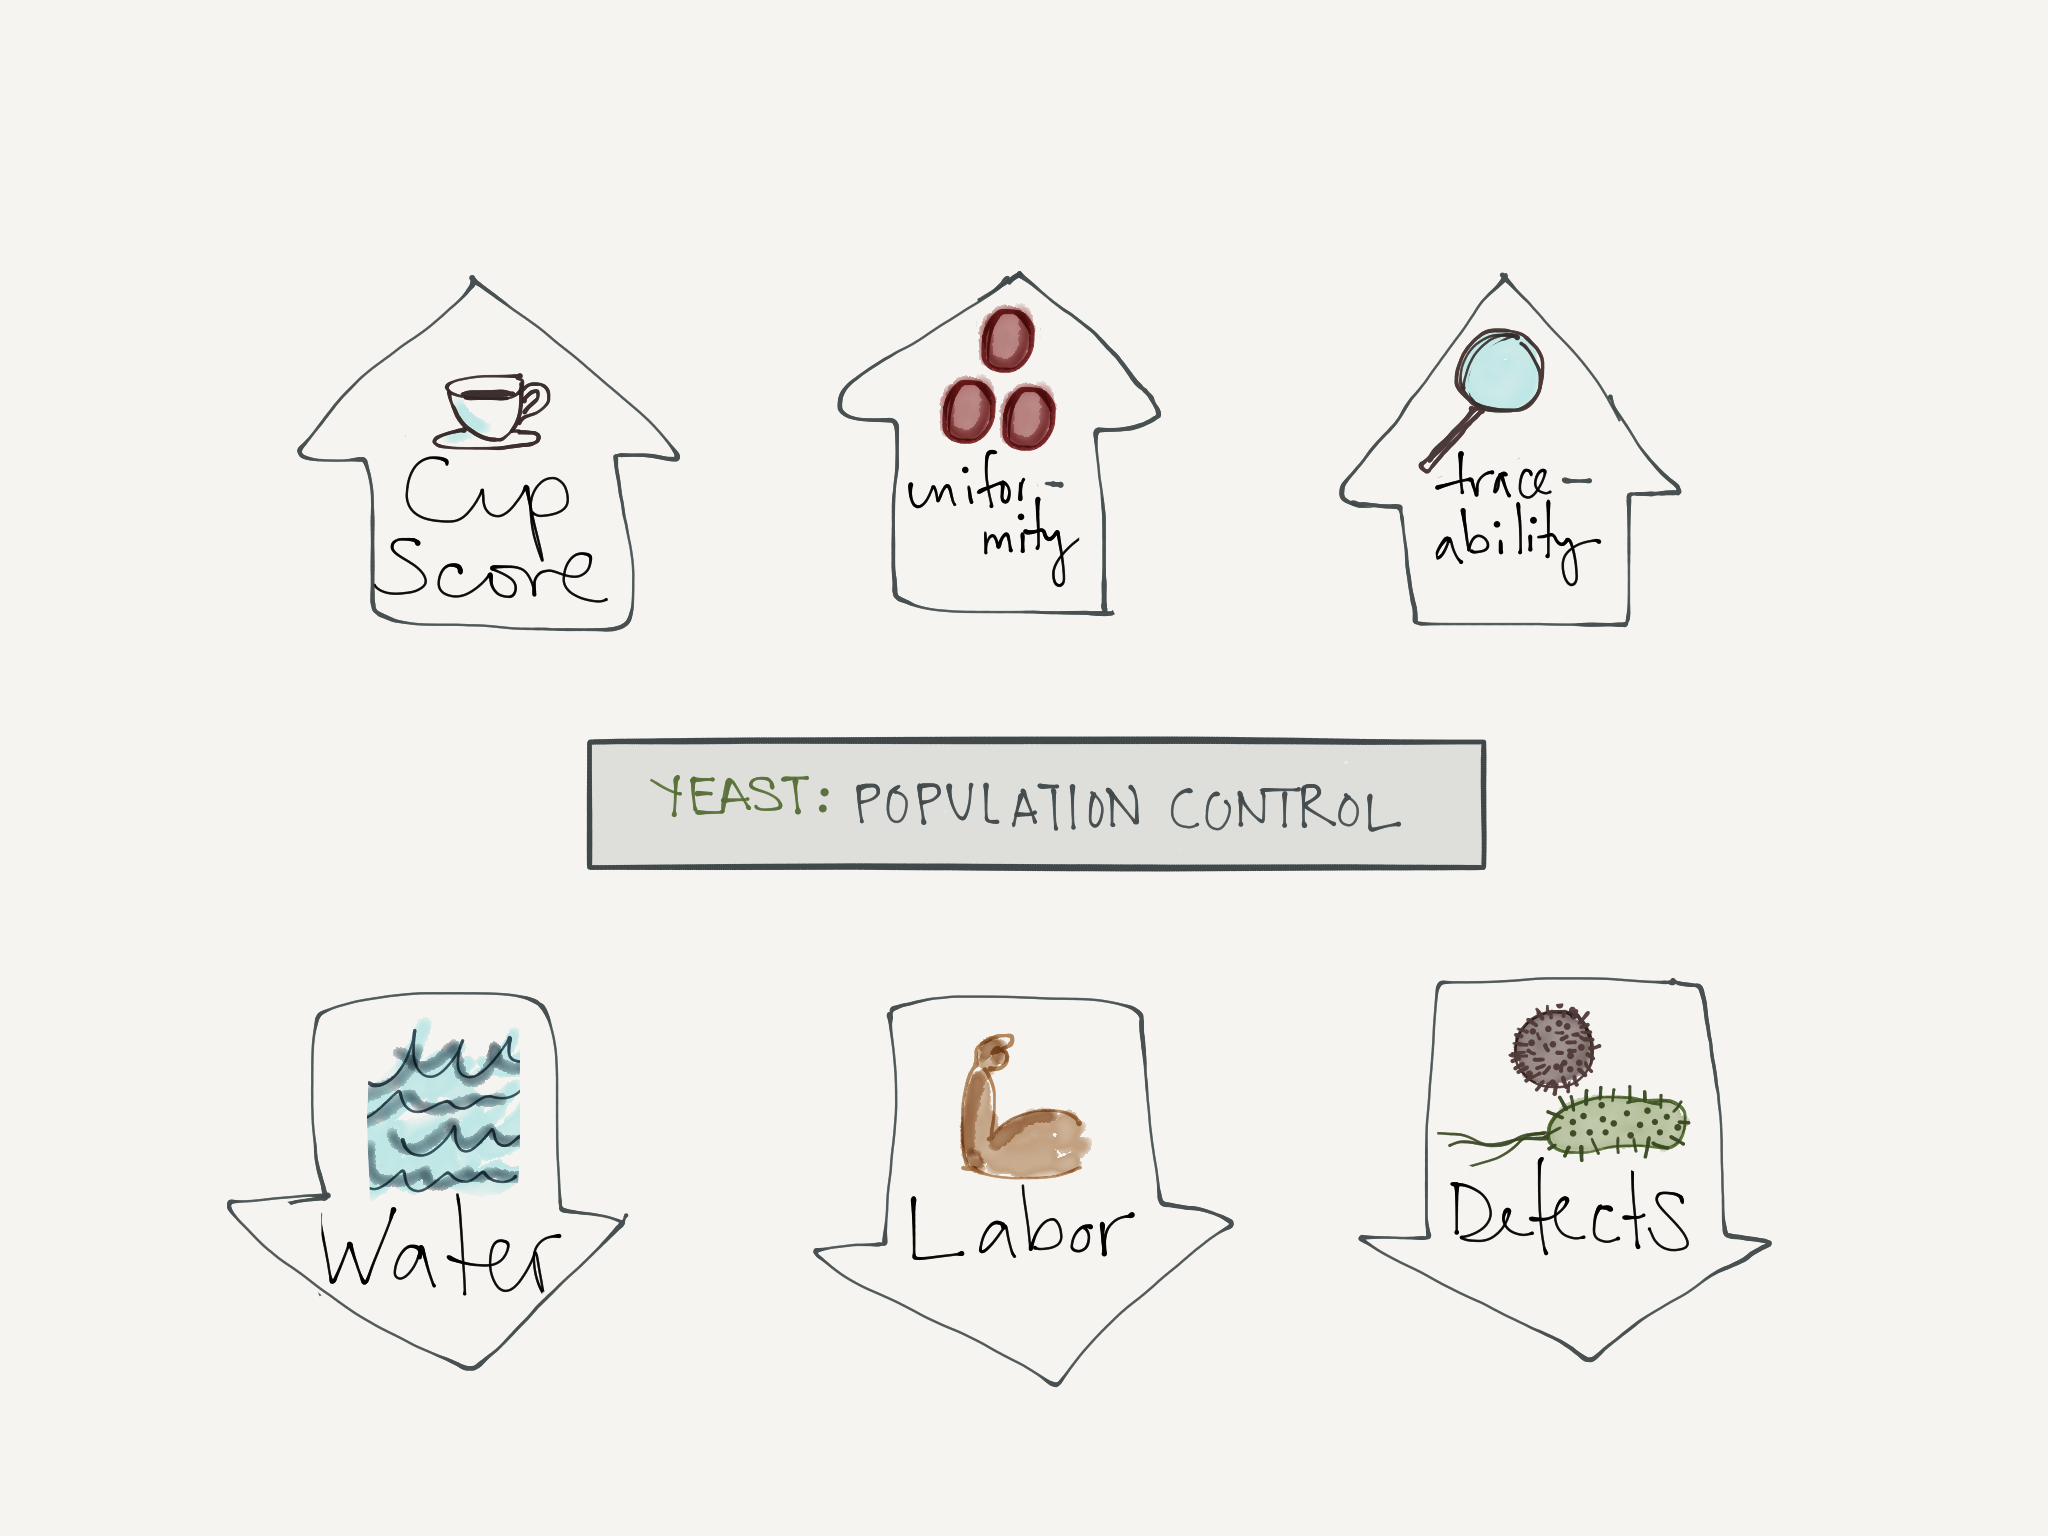 The Benefits of Yeast Population Control. Illustration by Lucia Solis